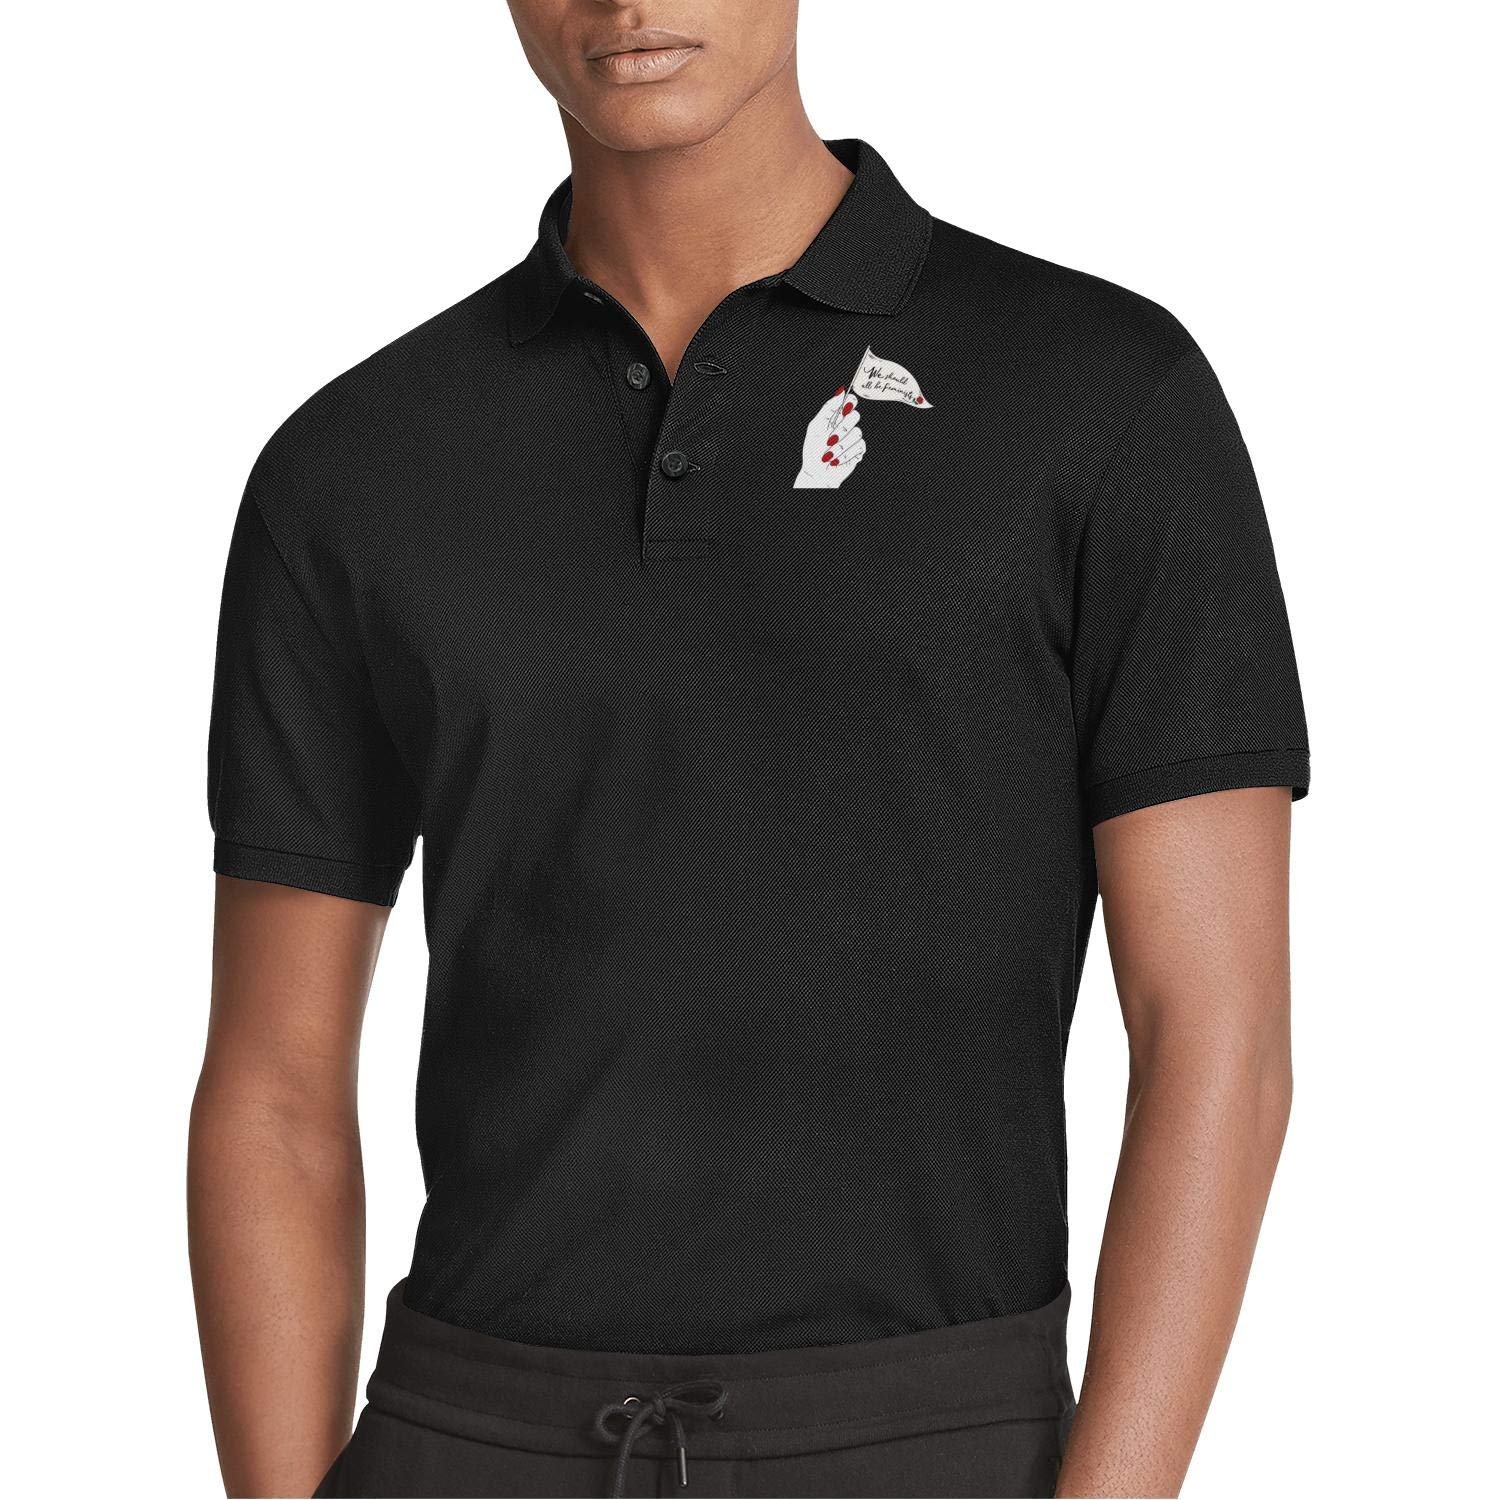 WYFEN Mens Printed Polo Shirt we Should be feministy Comfortable Short Sleeve Tee